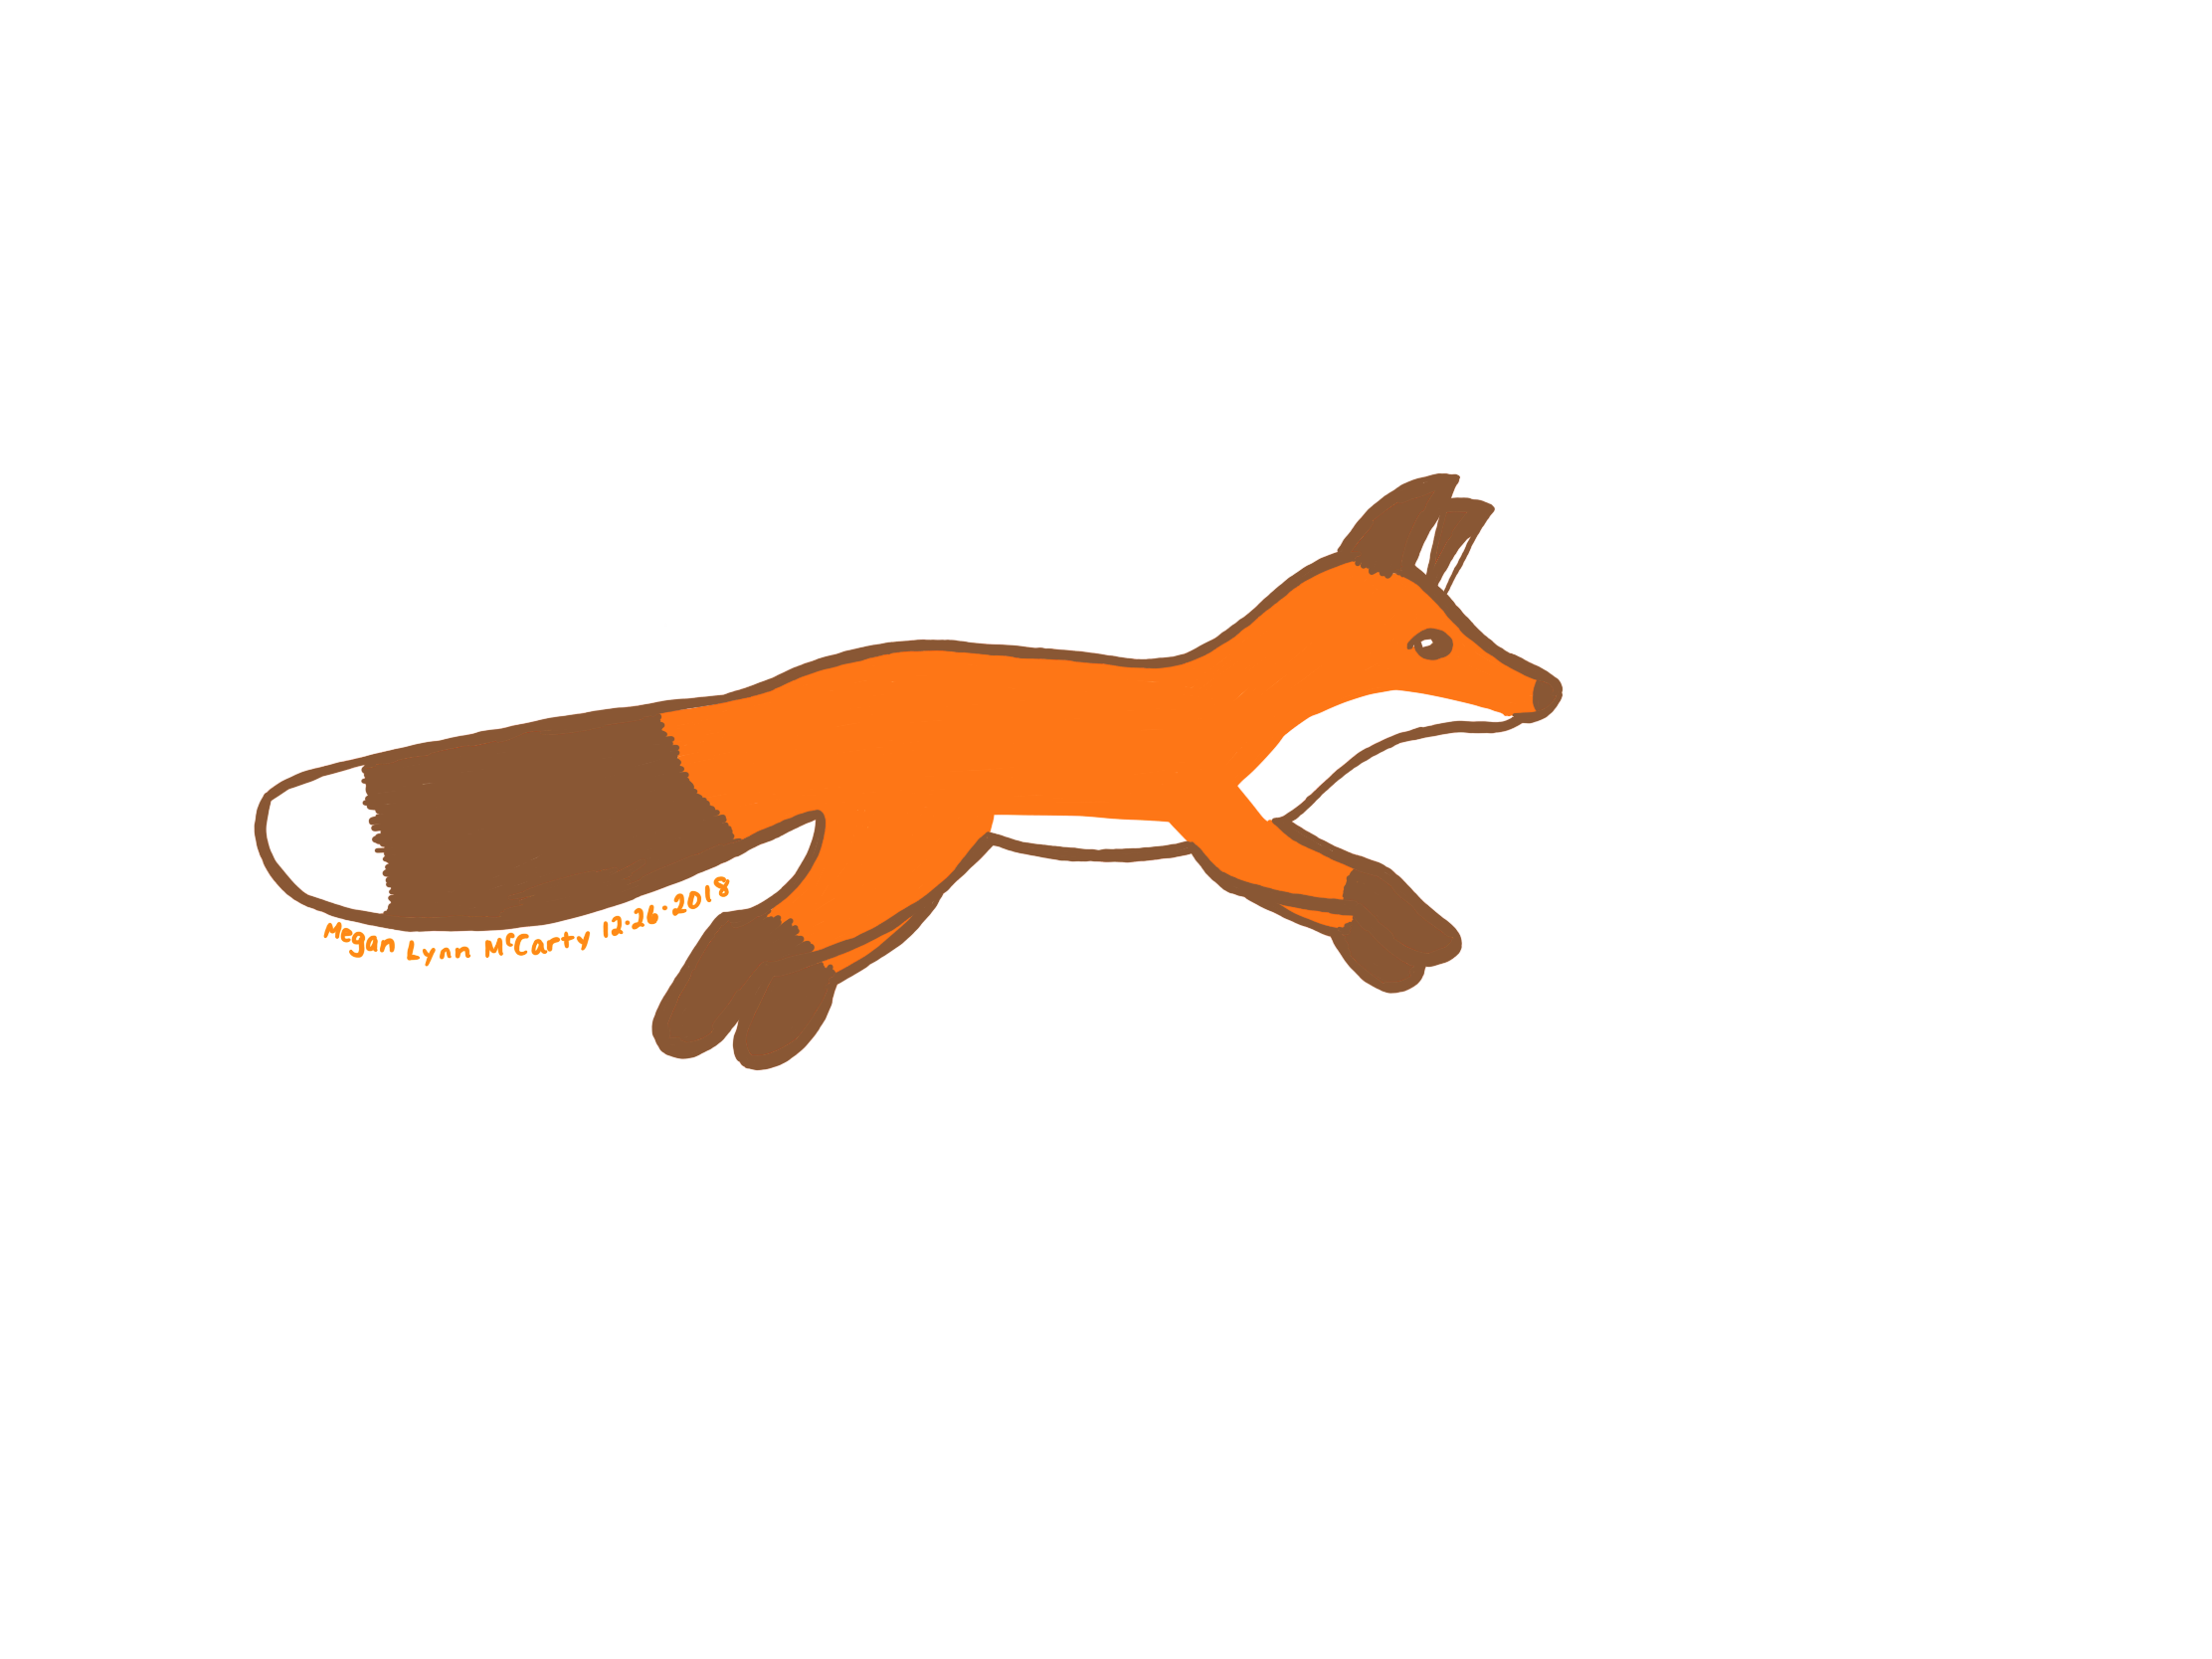 Redfox.png